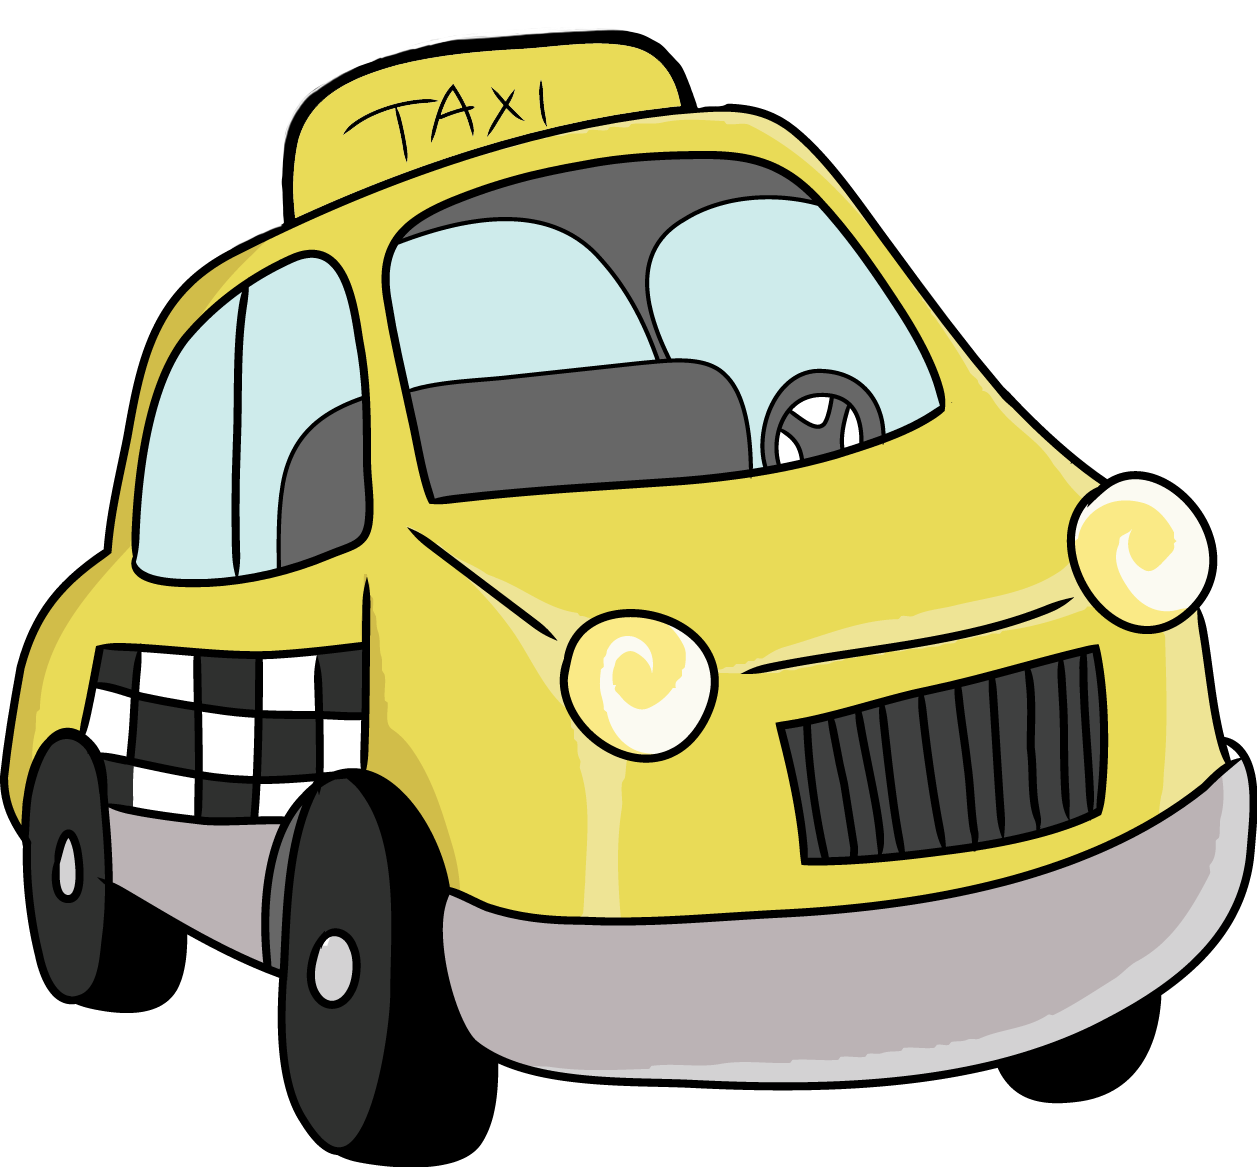 Taxi Clipart Black And White.